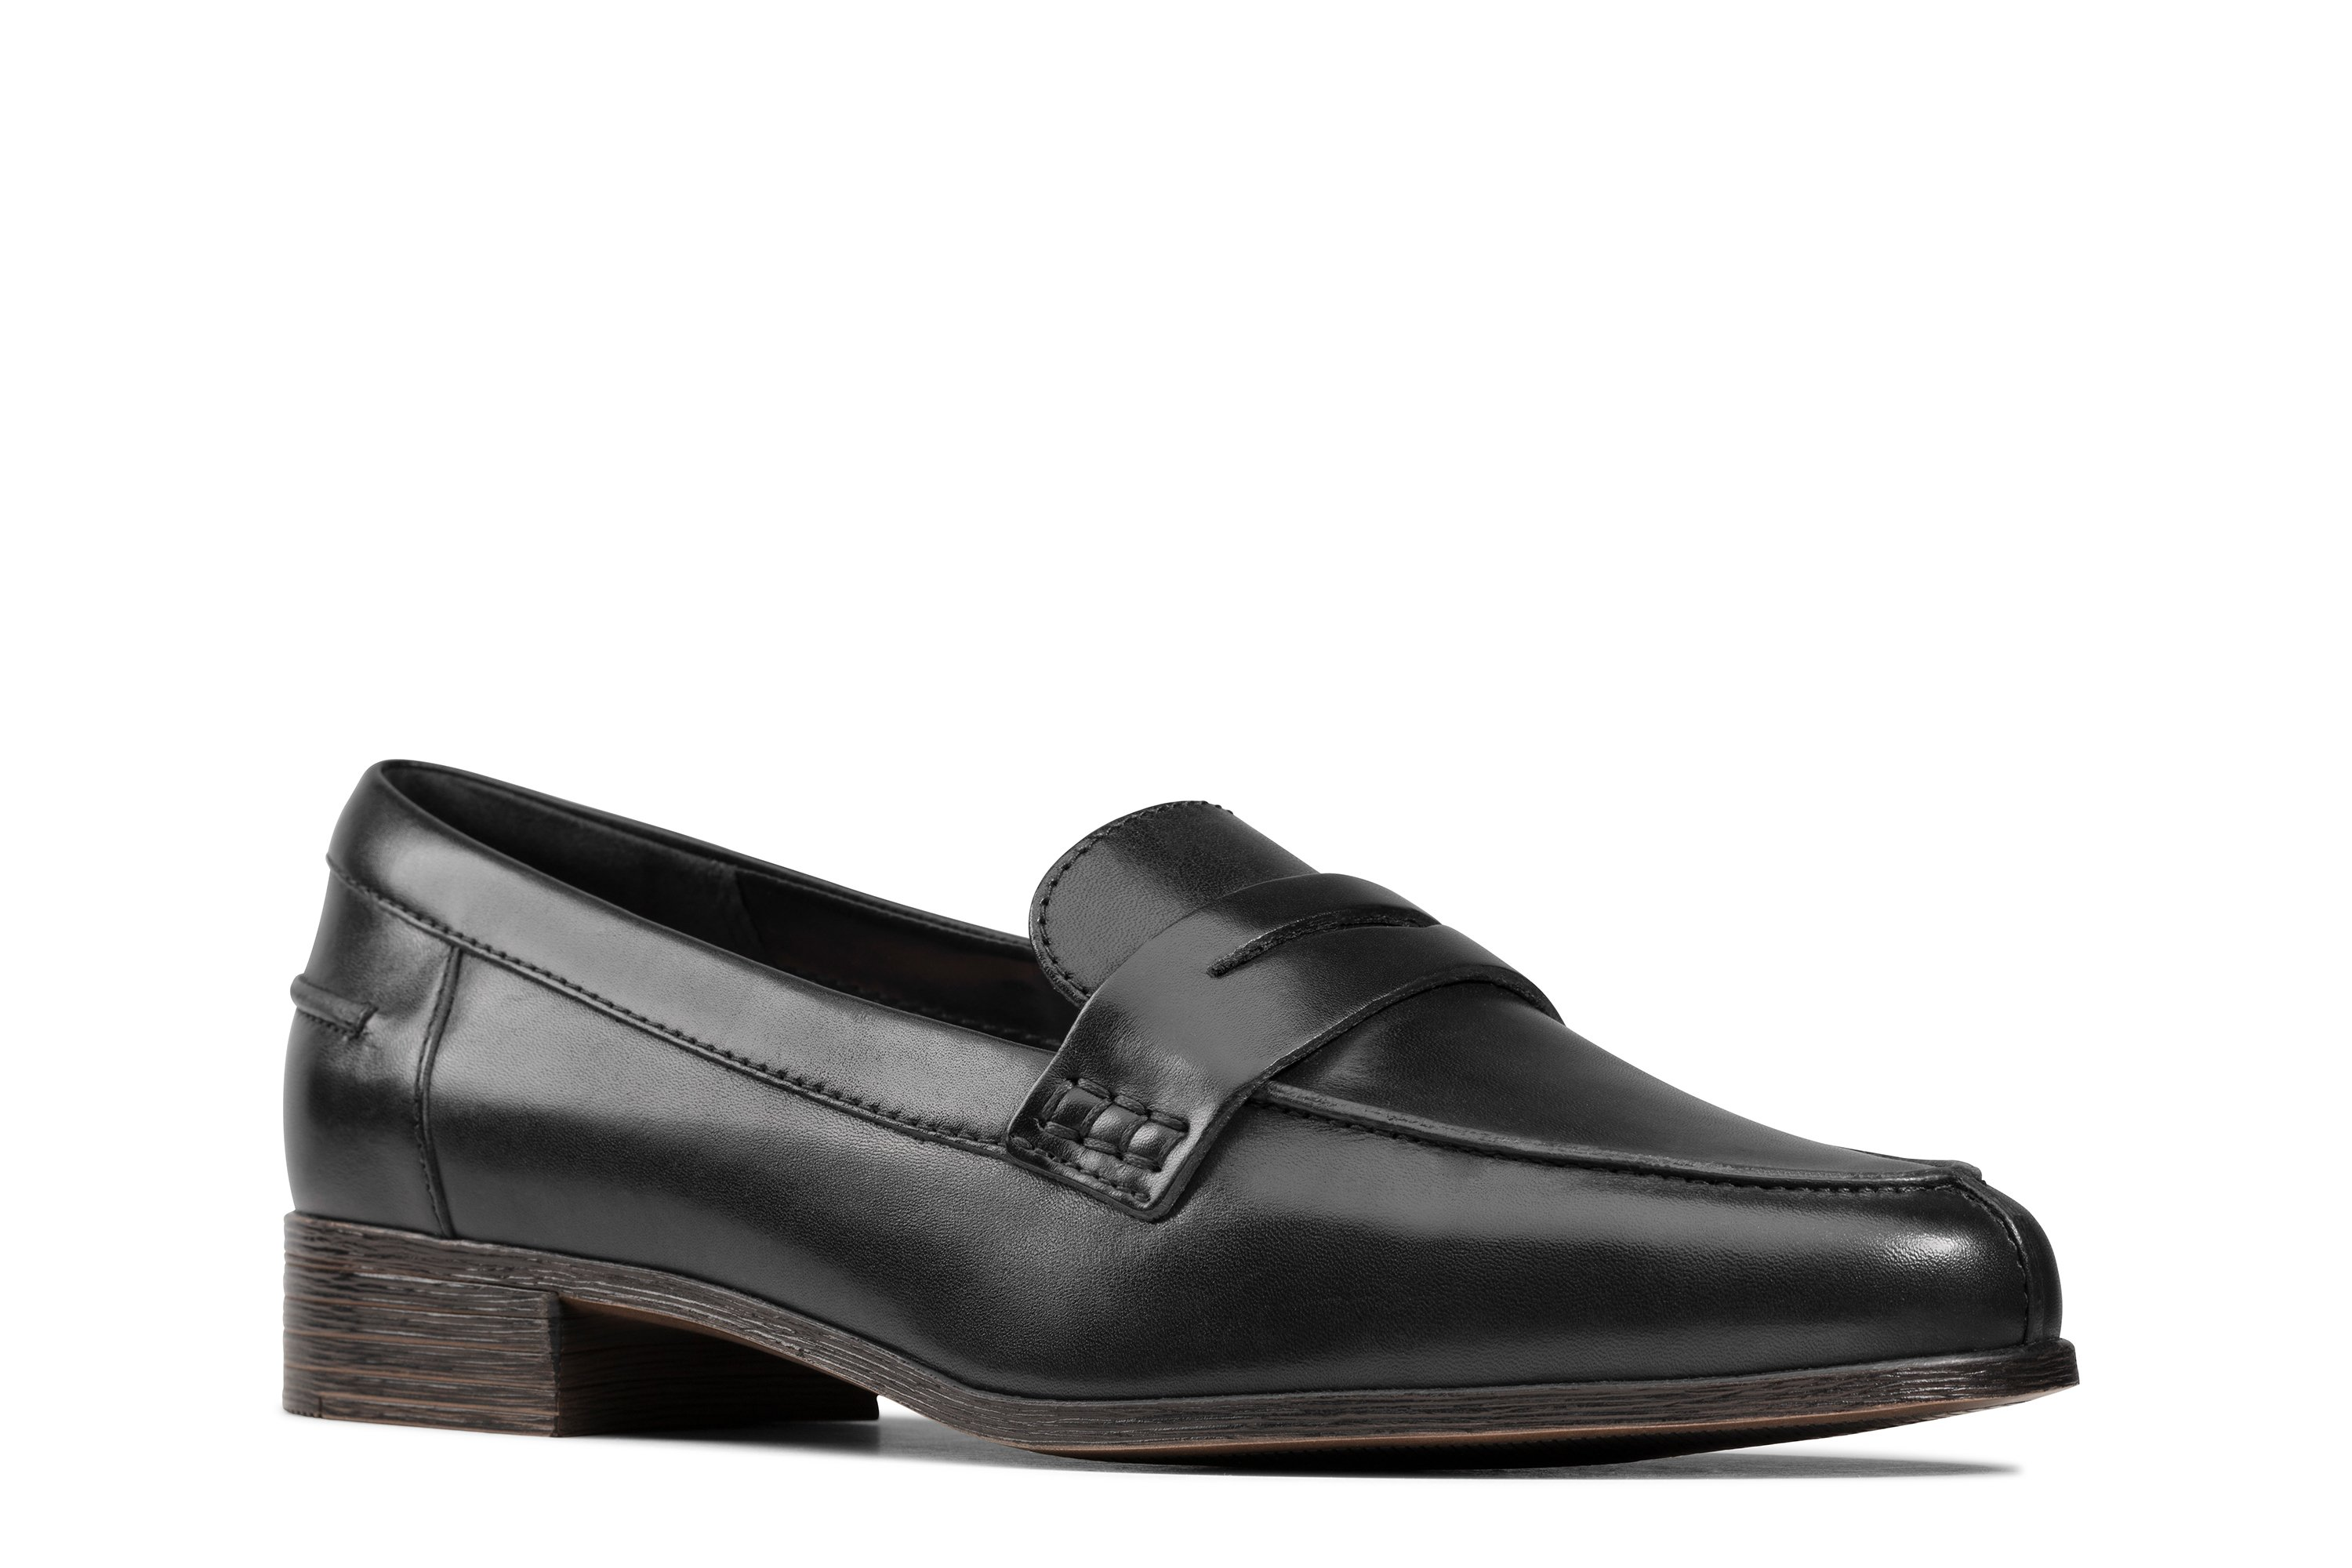 Clarks Hamble Loafer Black Leather 26147739